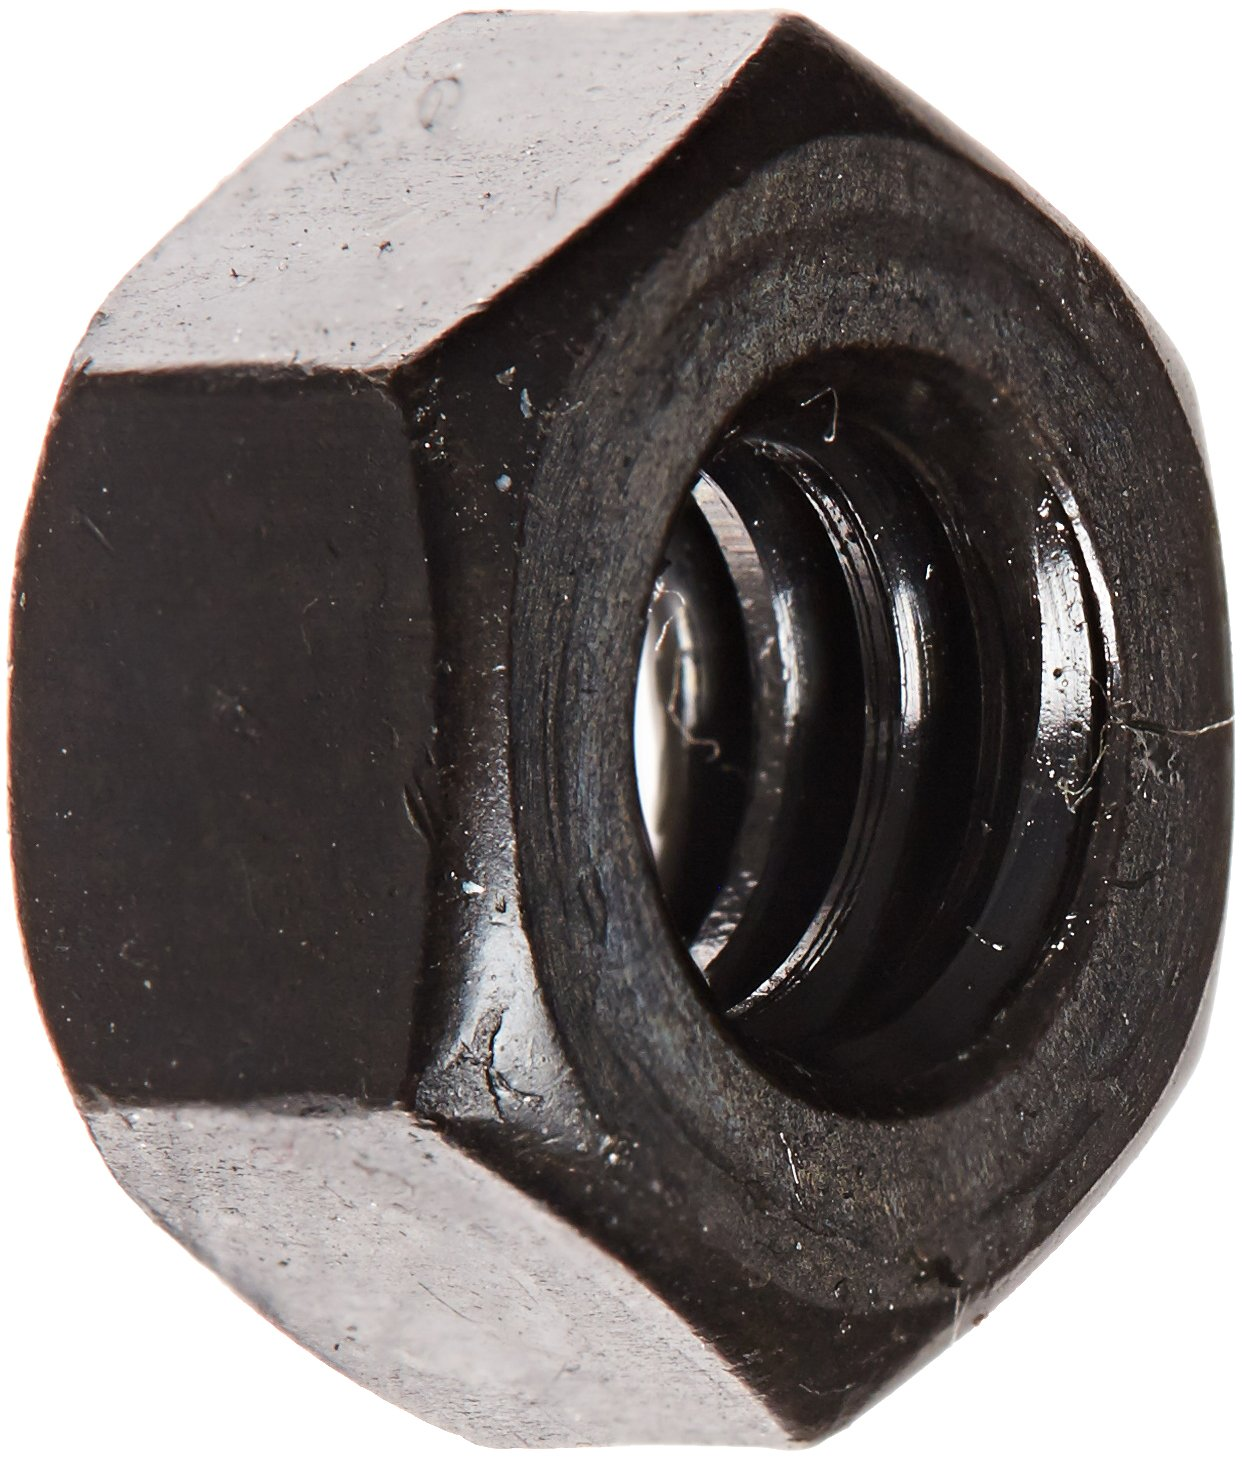 Plain Finish 5//16 Width Across Flats 18-8 Stainless Steel Hex Flange Nut 11//64 Overall Height Self-Locking Serrated Flange 6-32 Threads Meets ASME B18.2.2 Pack of 100